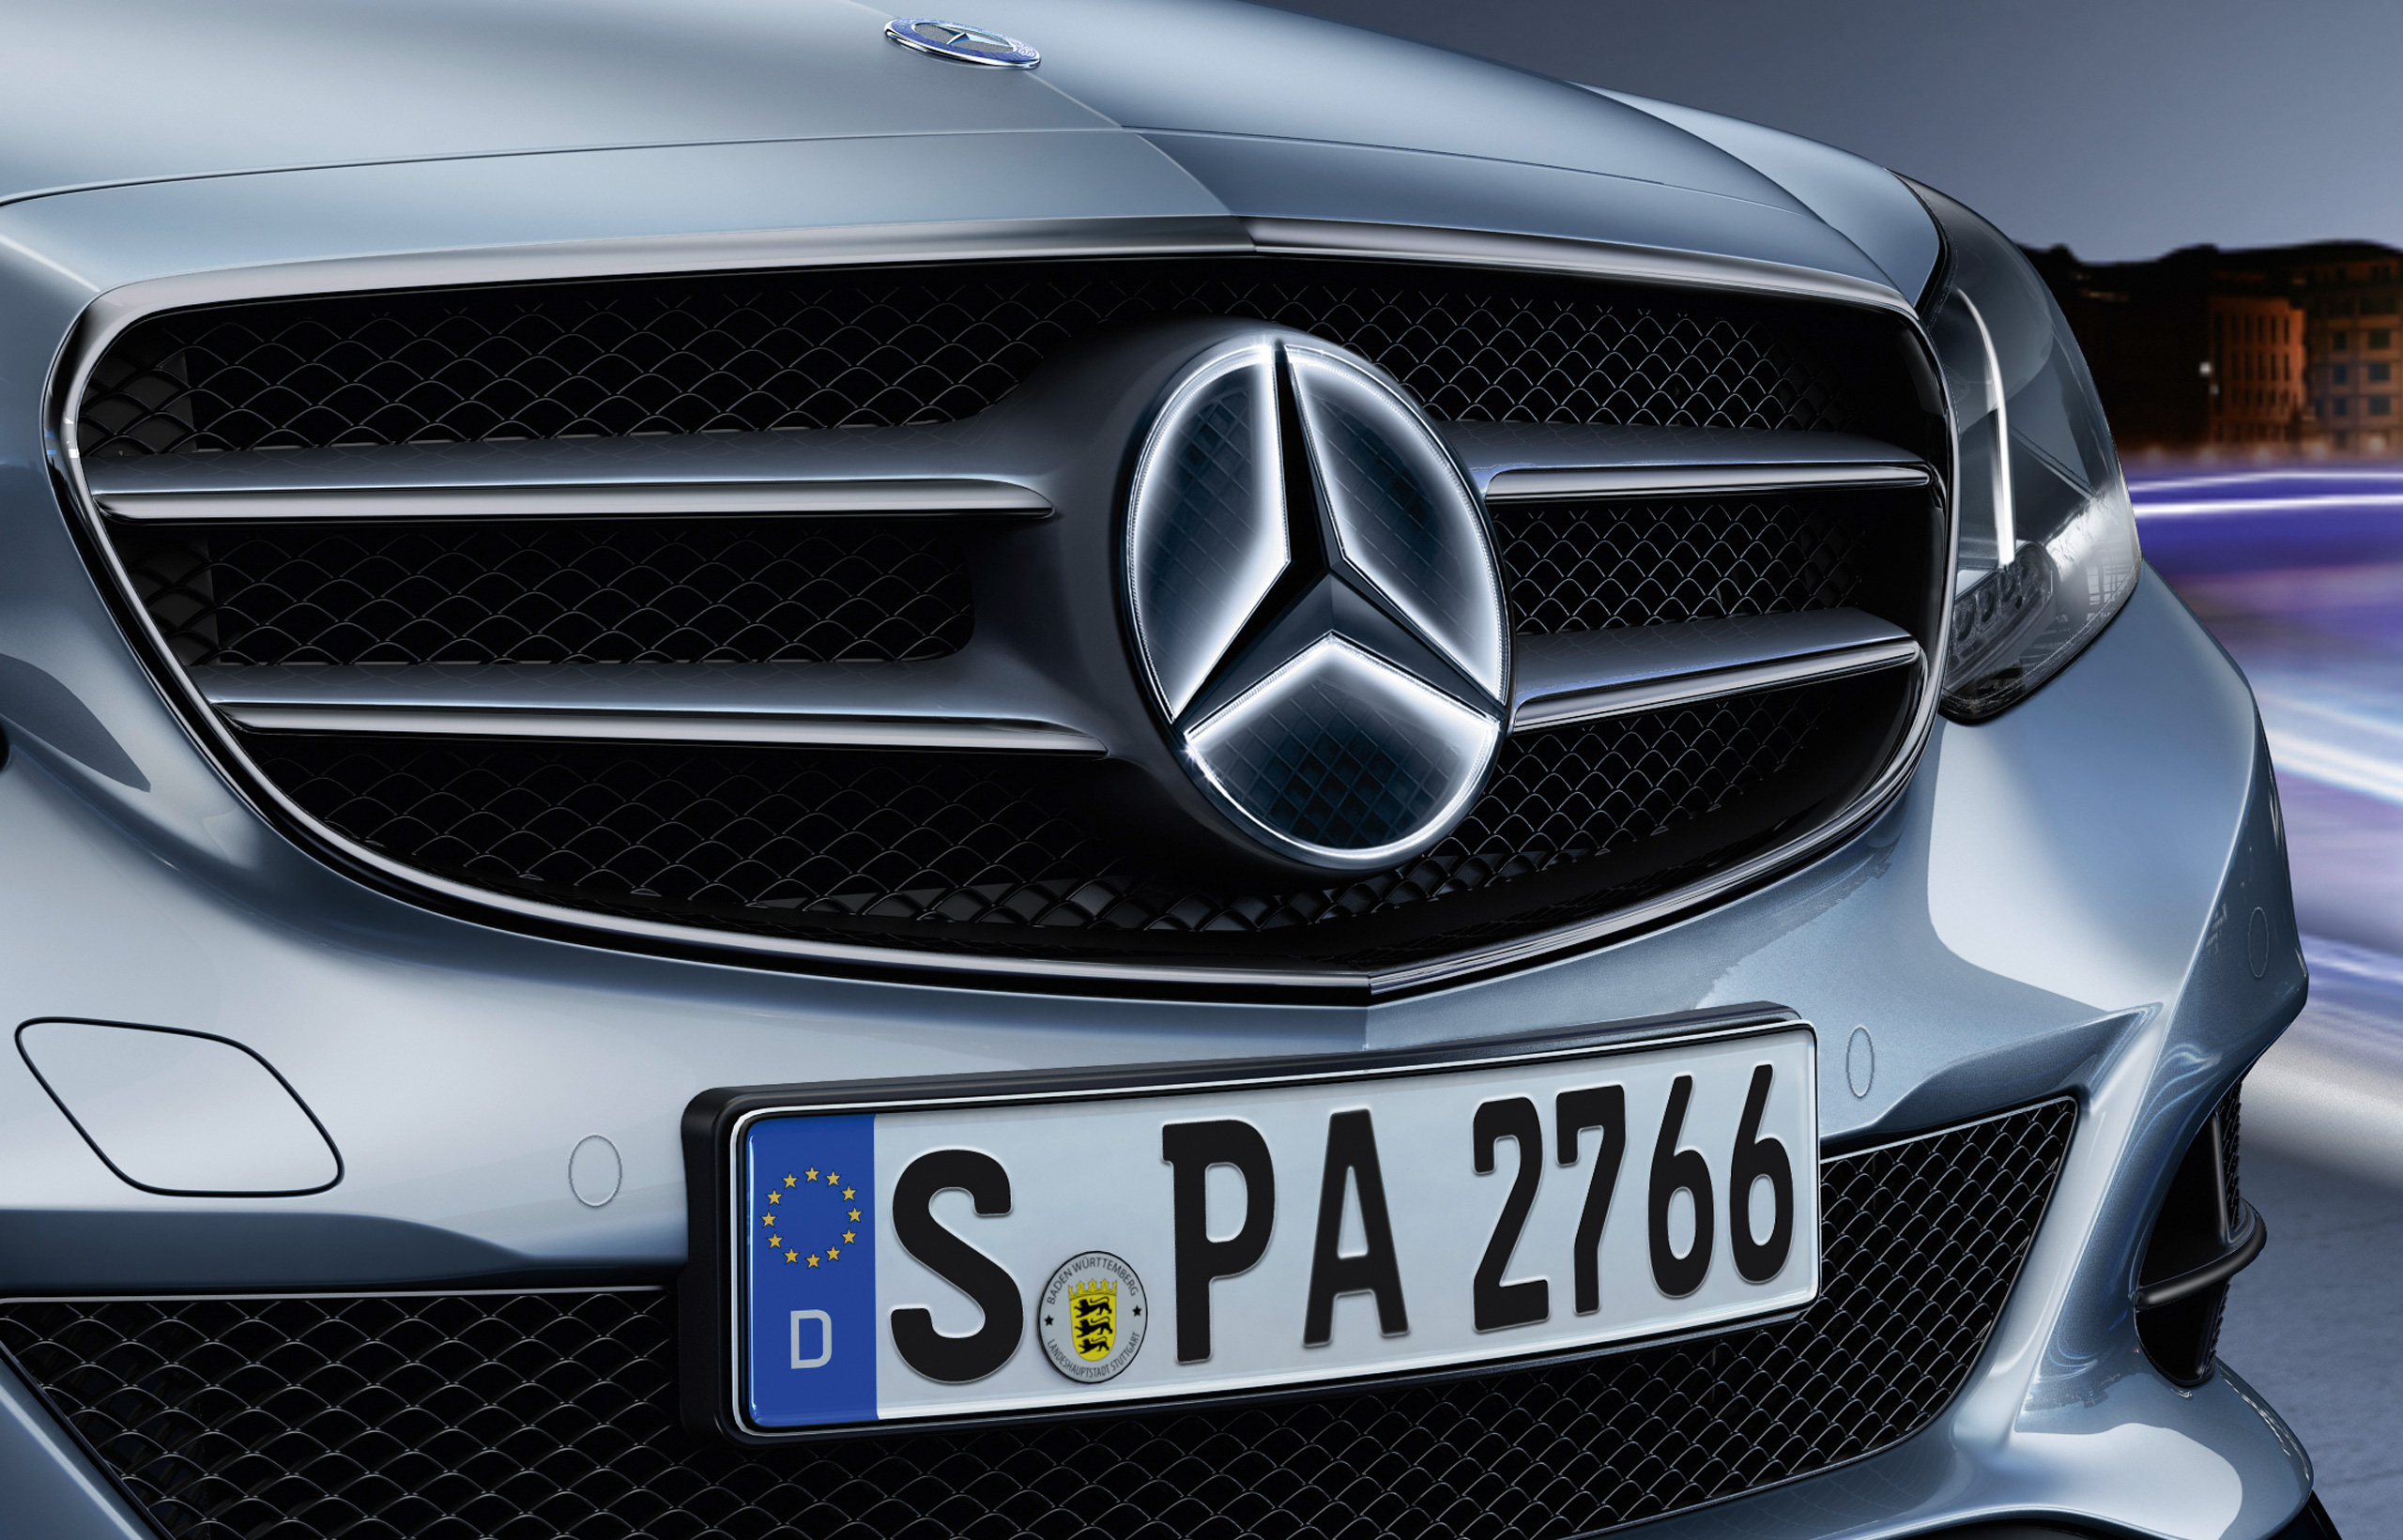 official mercedes benz e class accessories released image